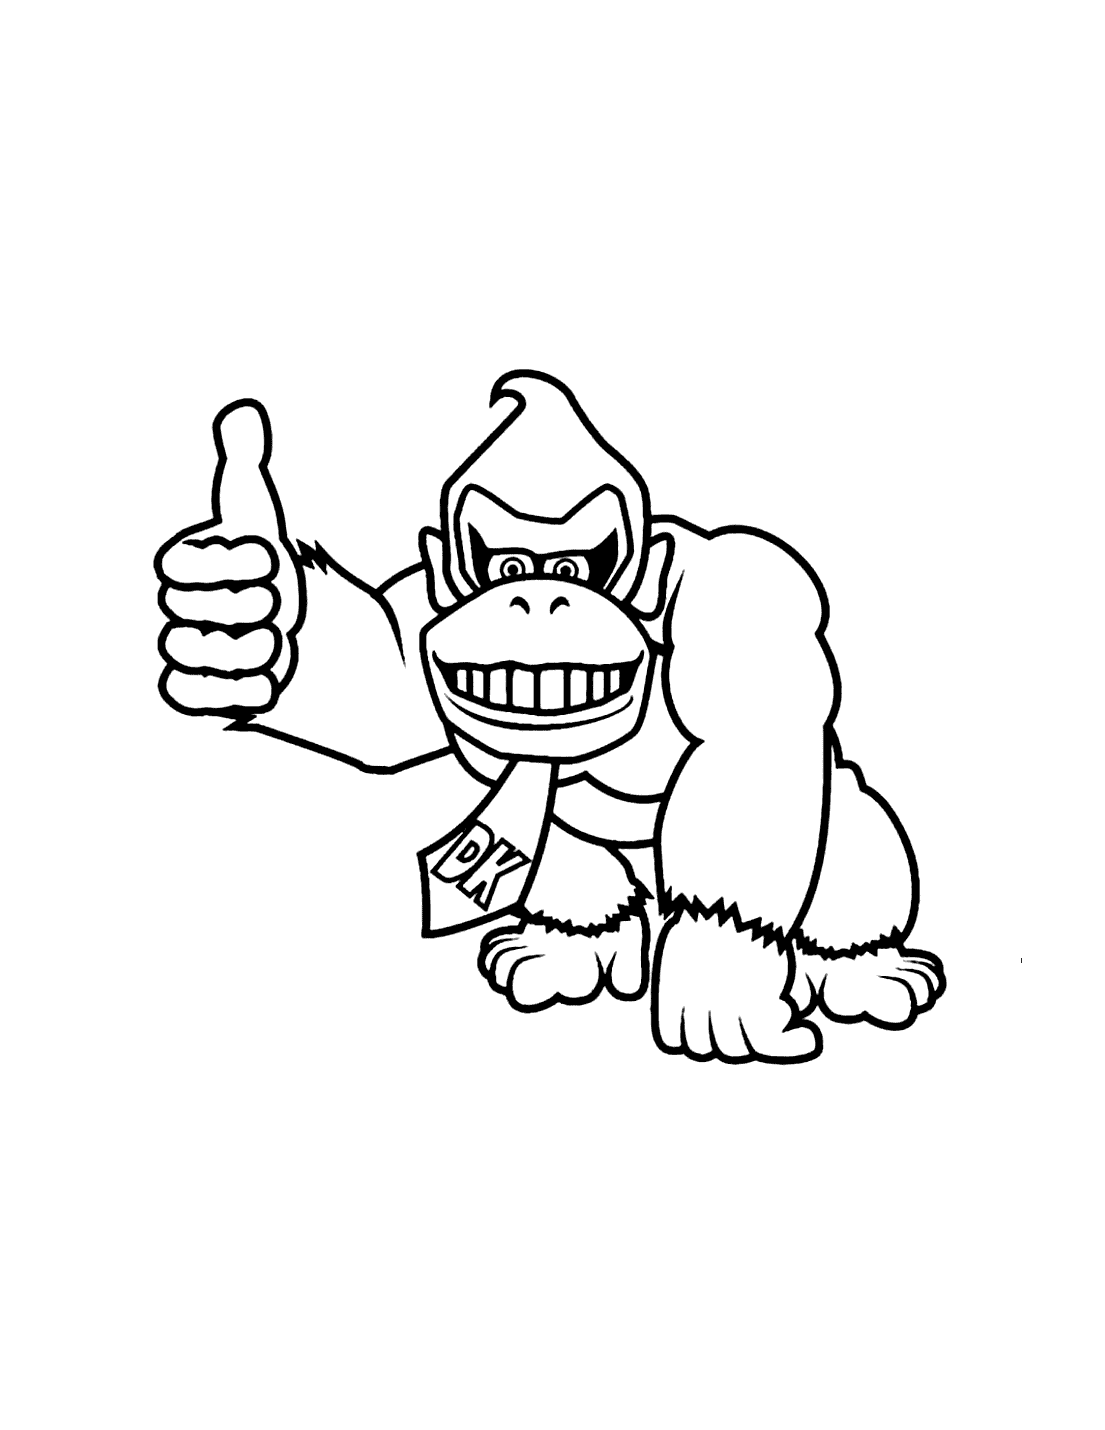 Thumbs Up Donkey Kong Coloring Pages